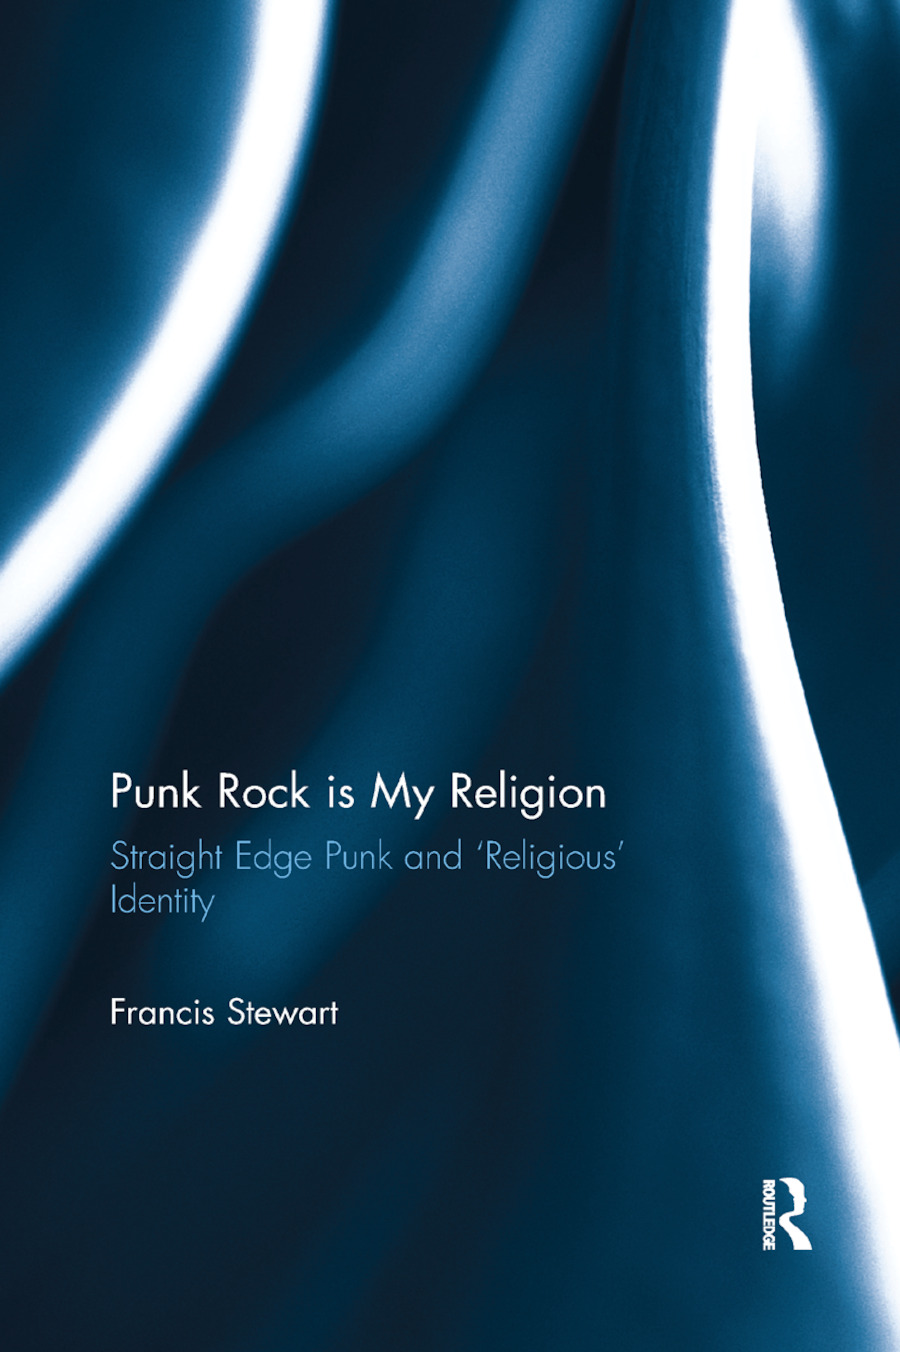 Punk Rock is My Religion